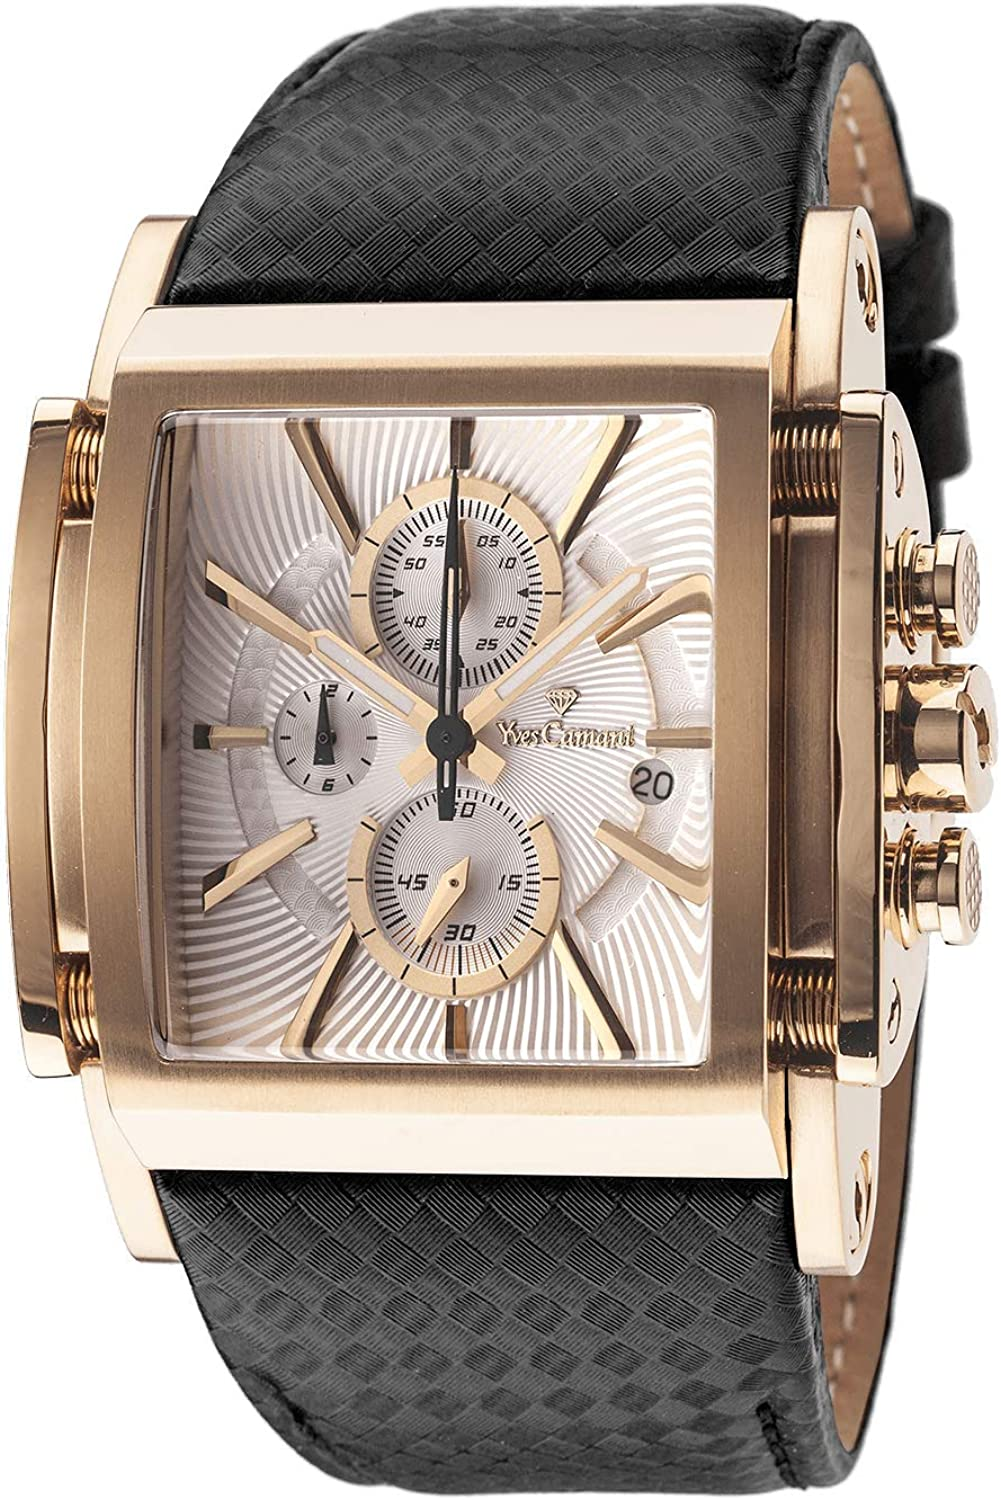 Yves Camani Men s Stainless Steel Chronograph Watch with Date Display Leather – Gold Silver